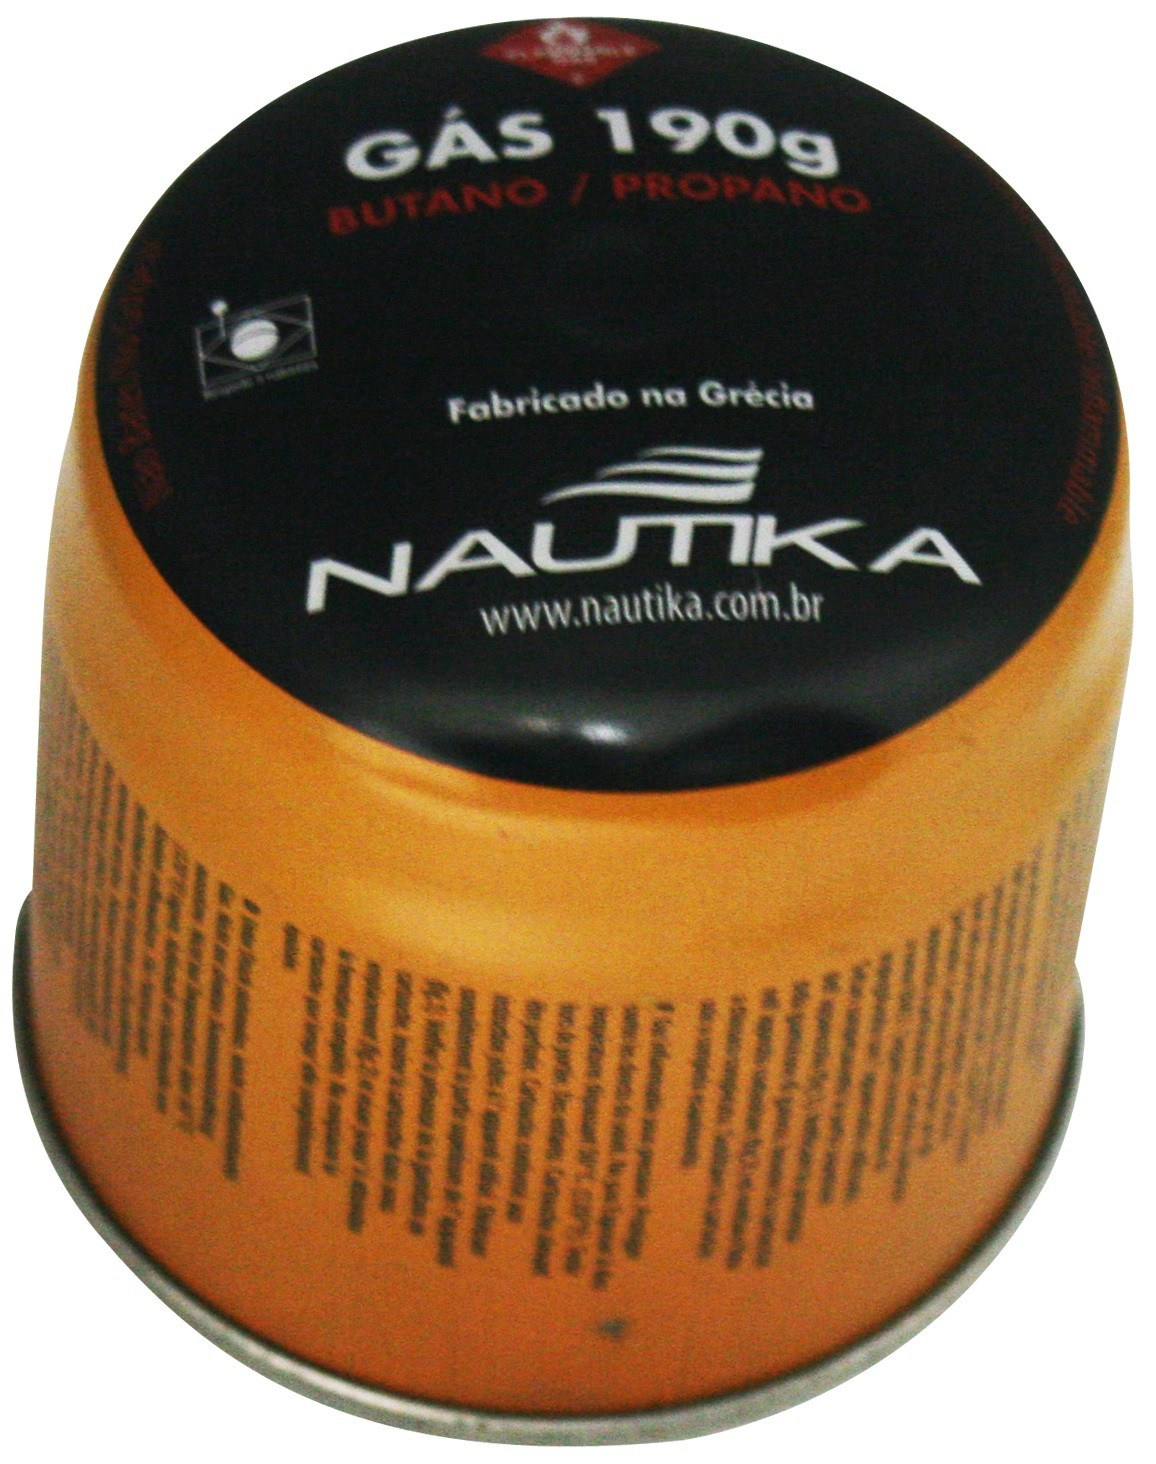 Cartucho de gas 190g